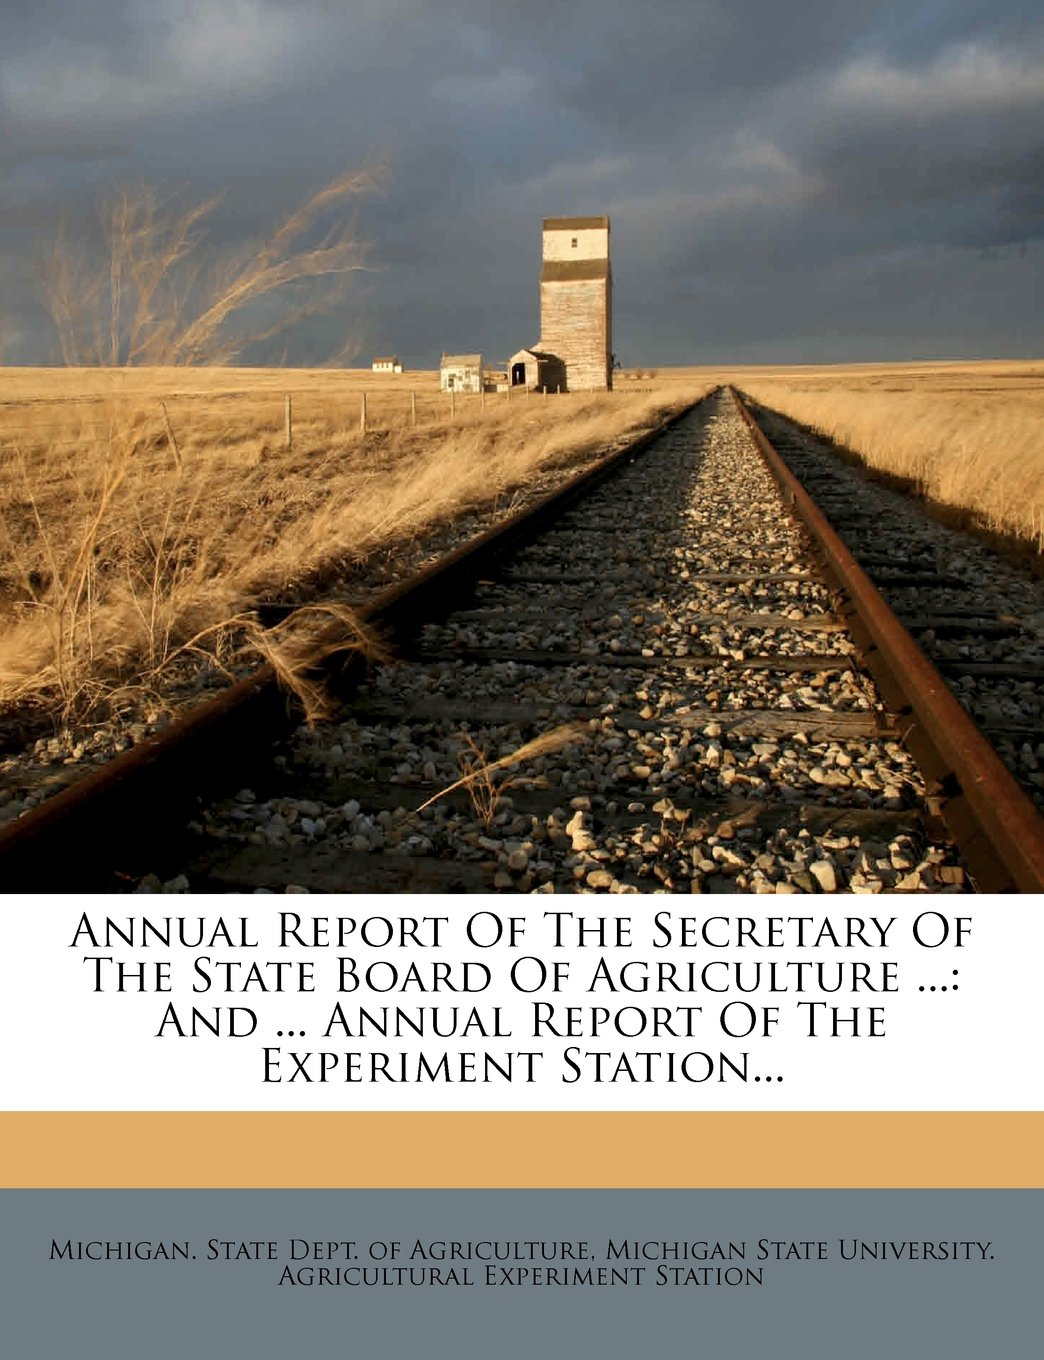 Download Annual Report Of The Secretary Of The State Board Of Agriculture ...: And ... Annual Report Of The Experiment Station... ePub fb2 ebook